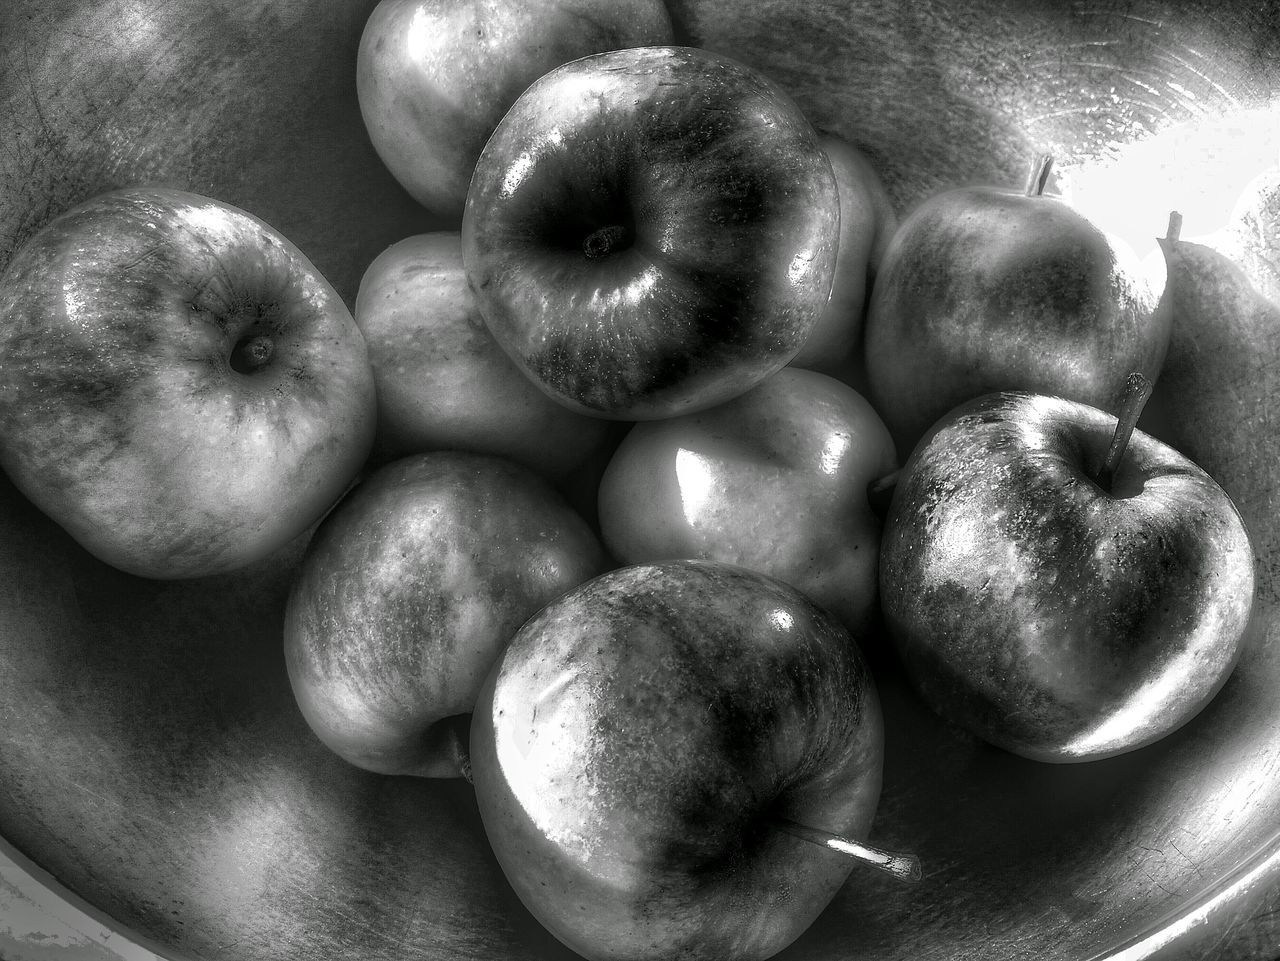 healthy eating, food, food and drink, fruit, freshness, no people, vegetable, indoors, close-up, day